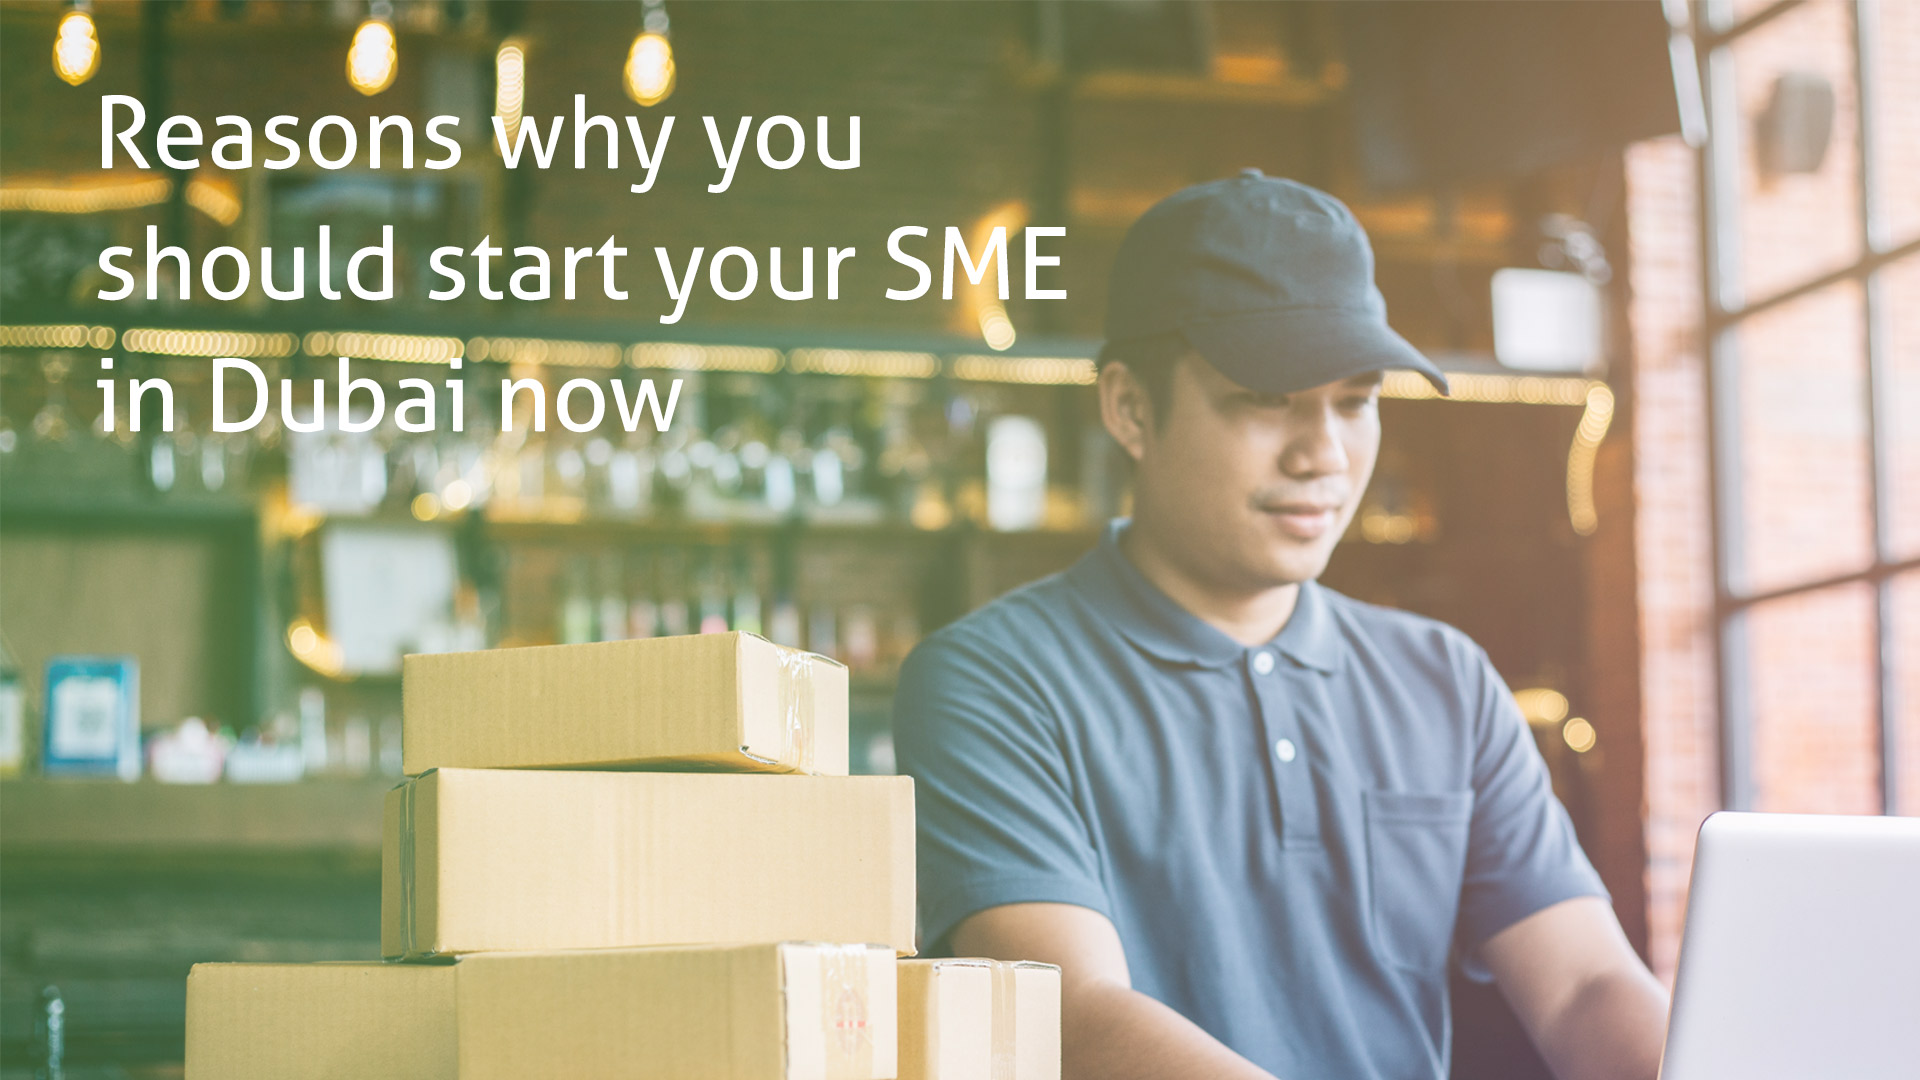 Reasons why you should start your SME in Dubai now